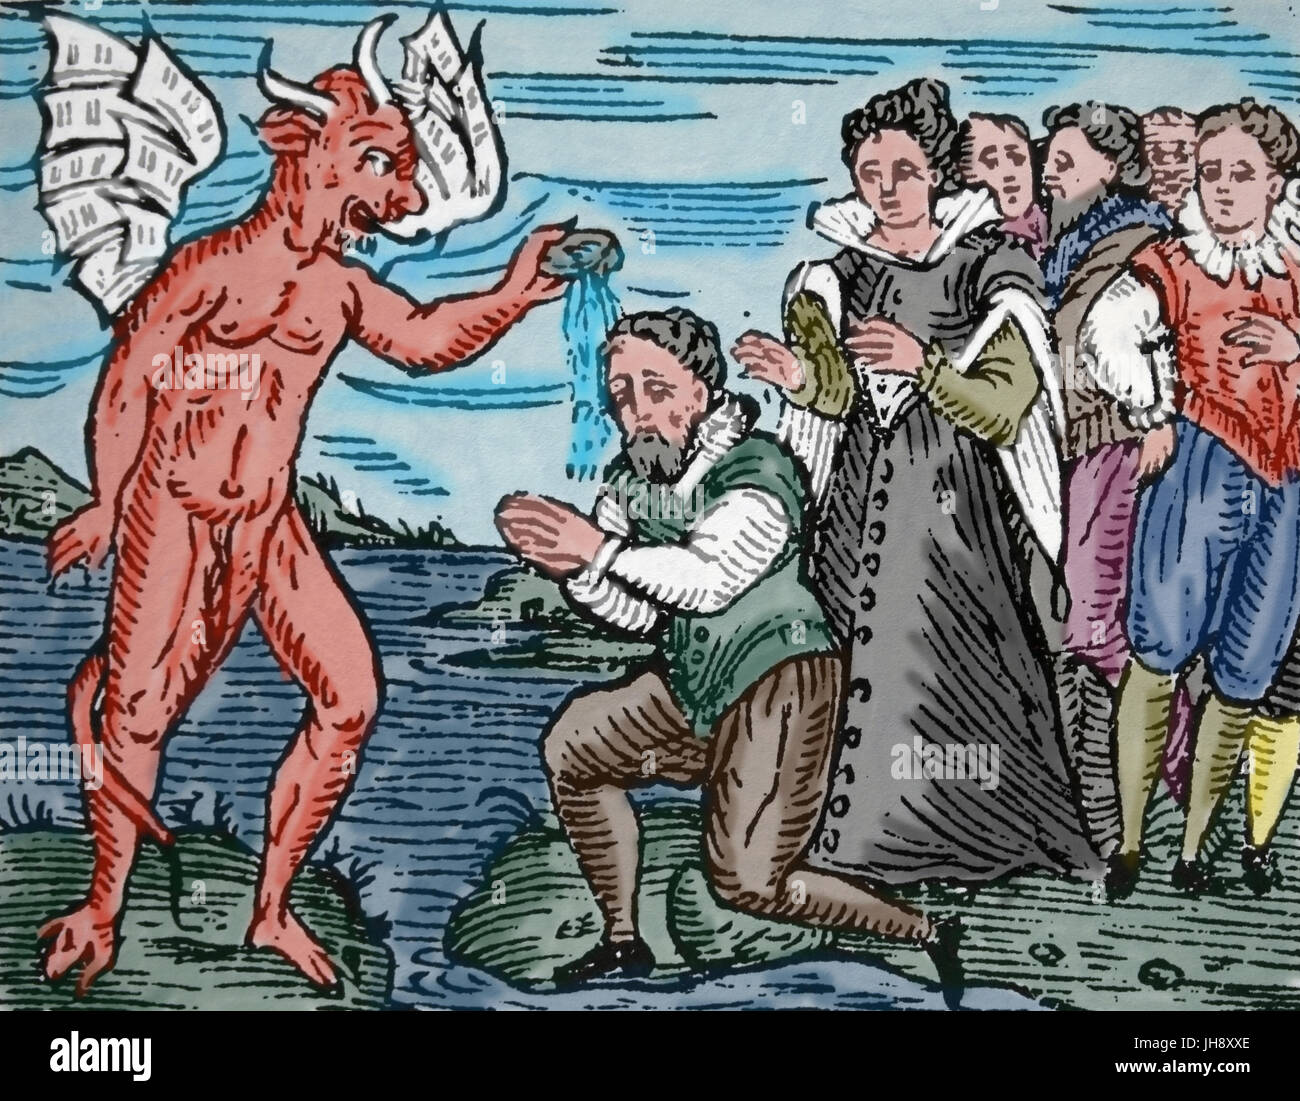 Satan rebaptizing young sorcerers. 17th century. Engraving, Color. - Stock Image